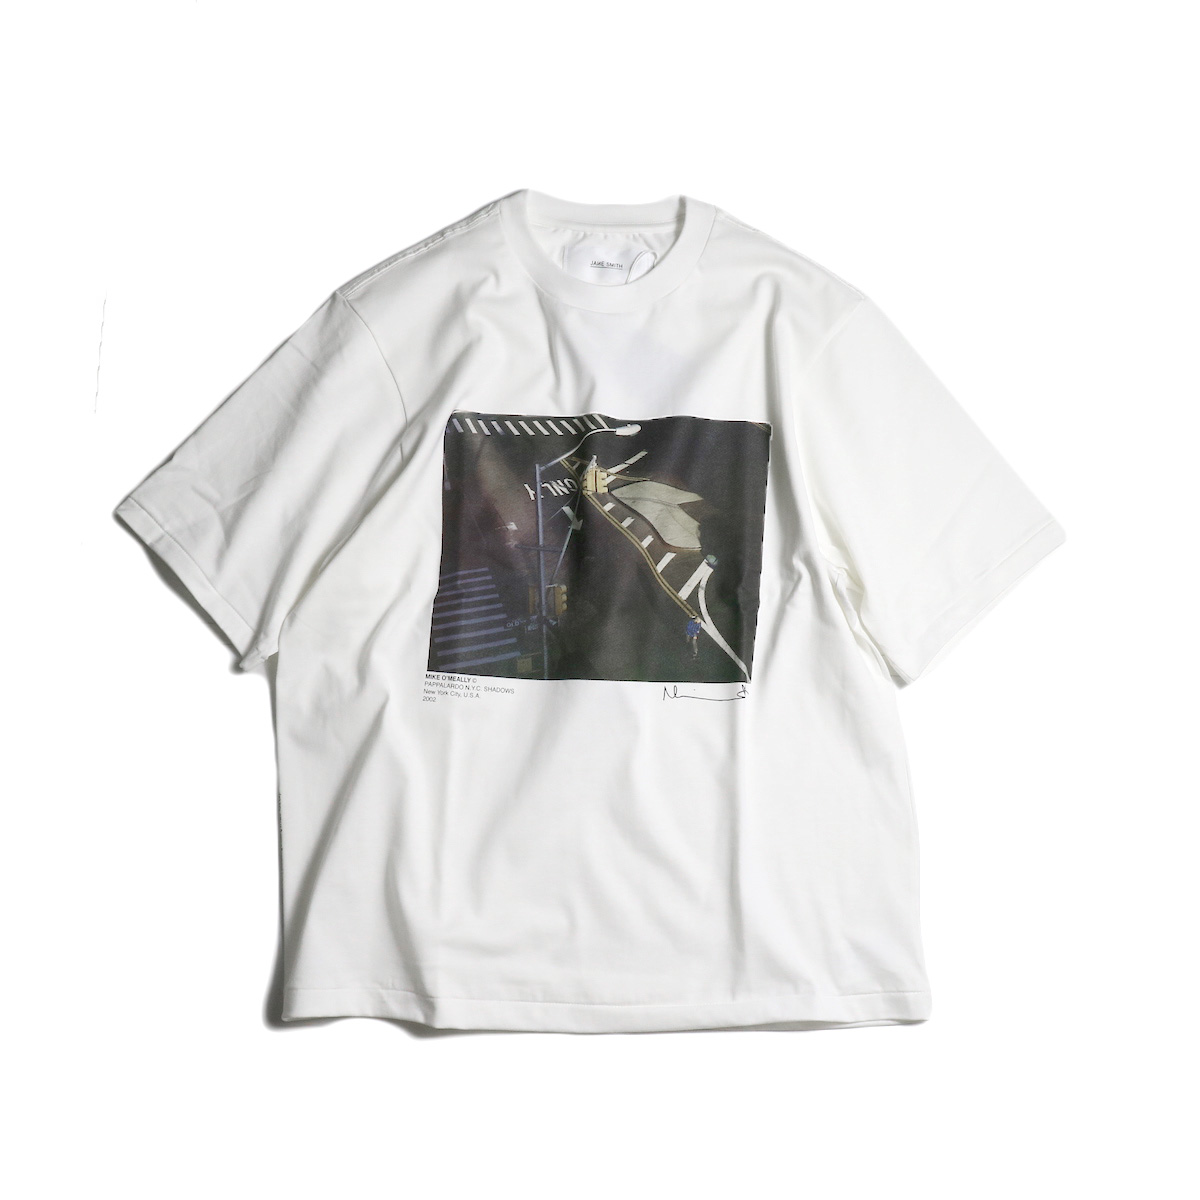 JANE SMITH / PAPPALARDO NYC SHADOWS. S/S Tee